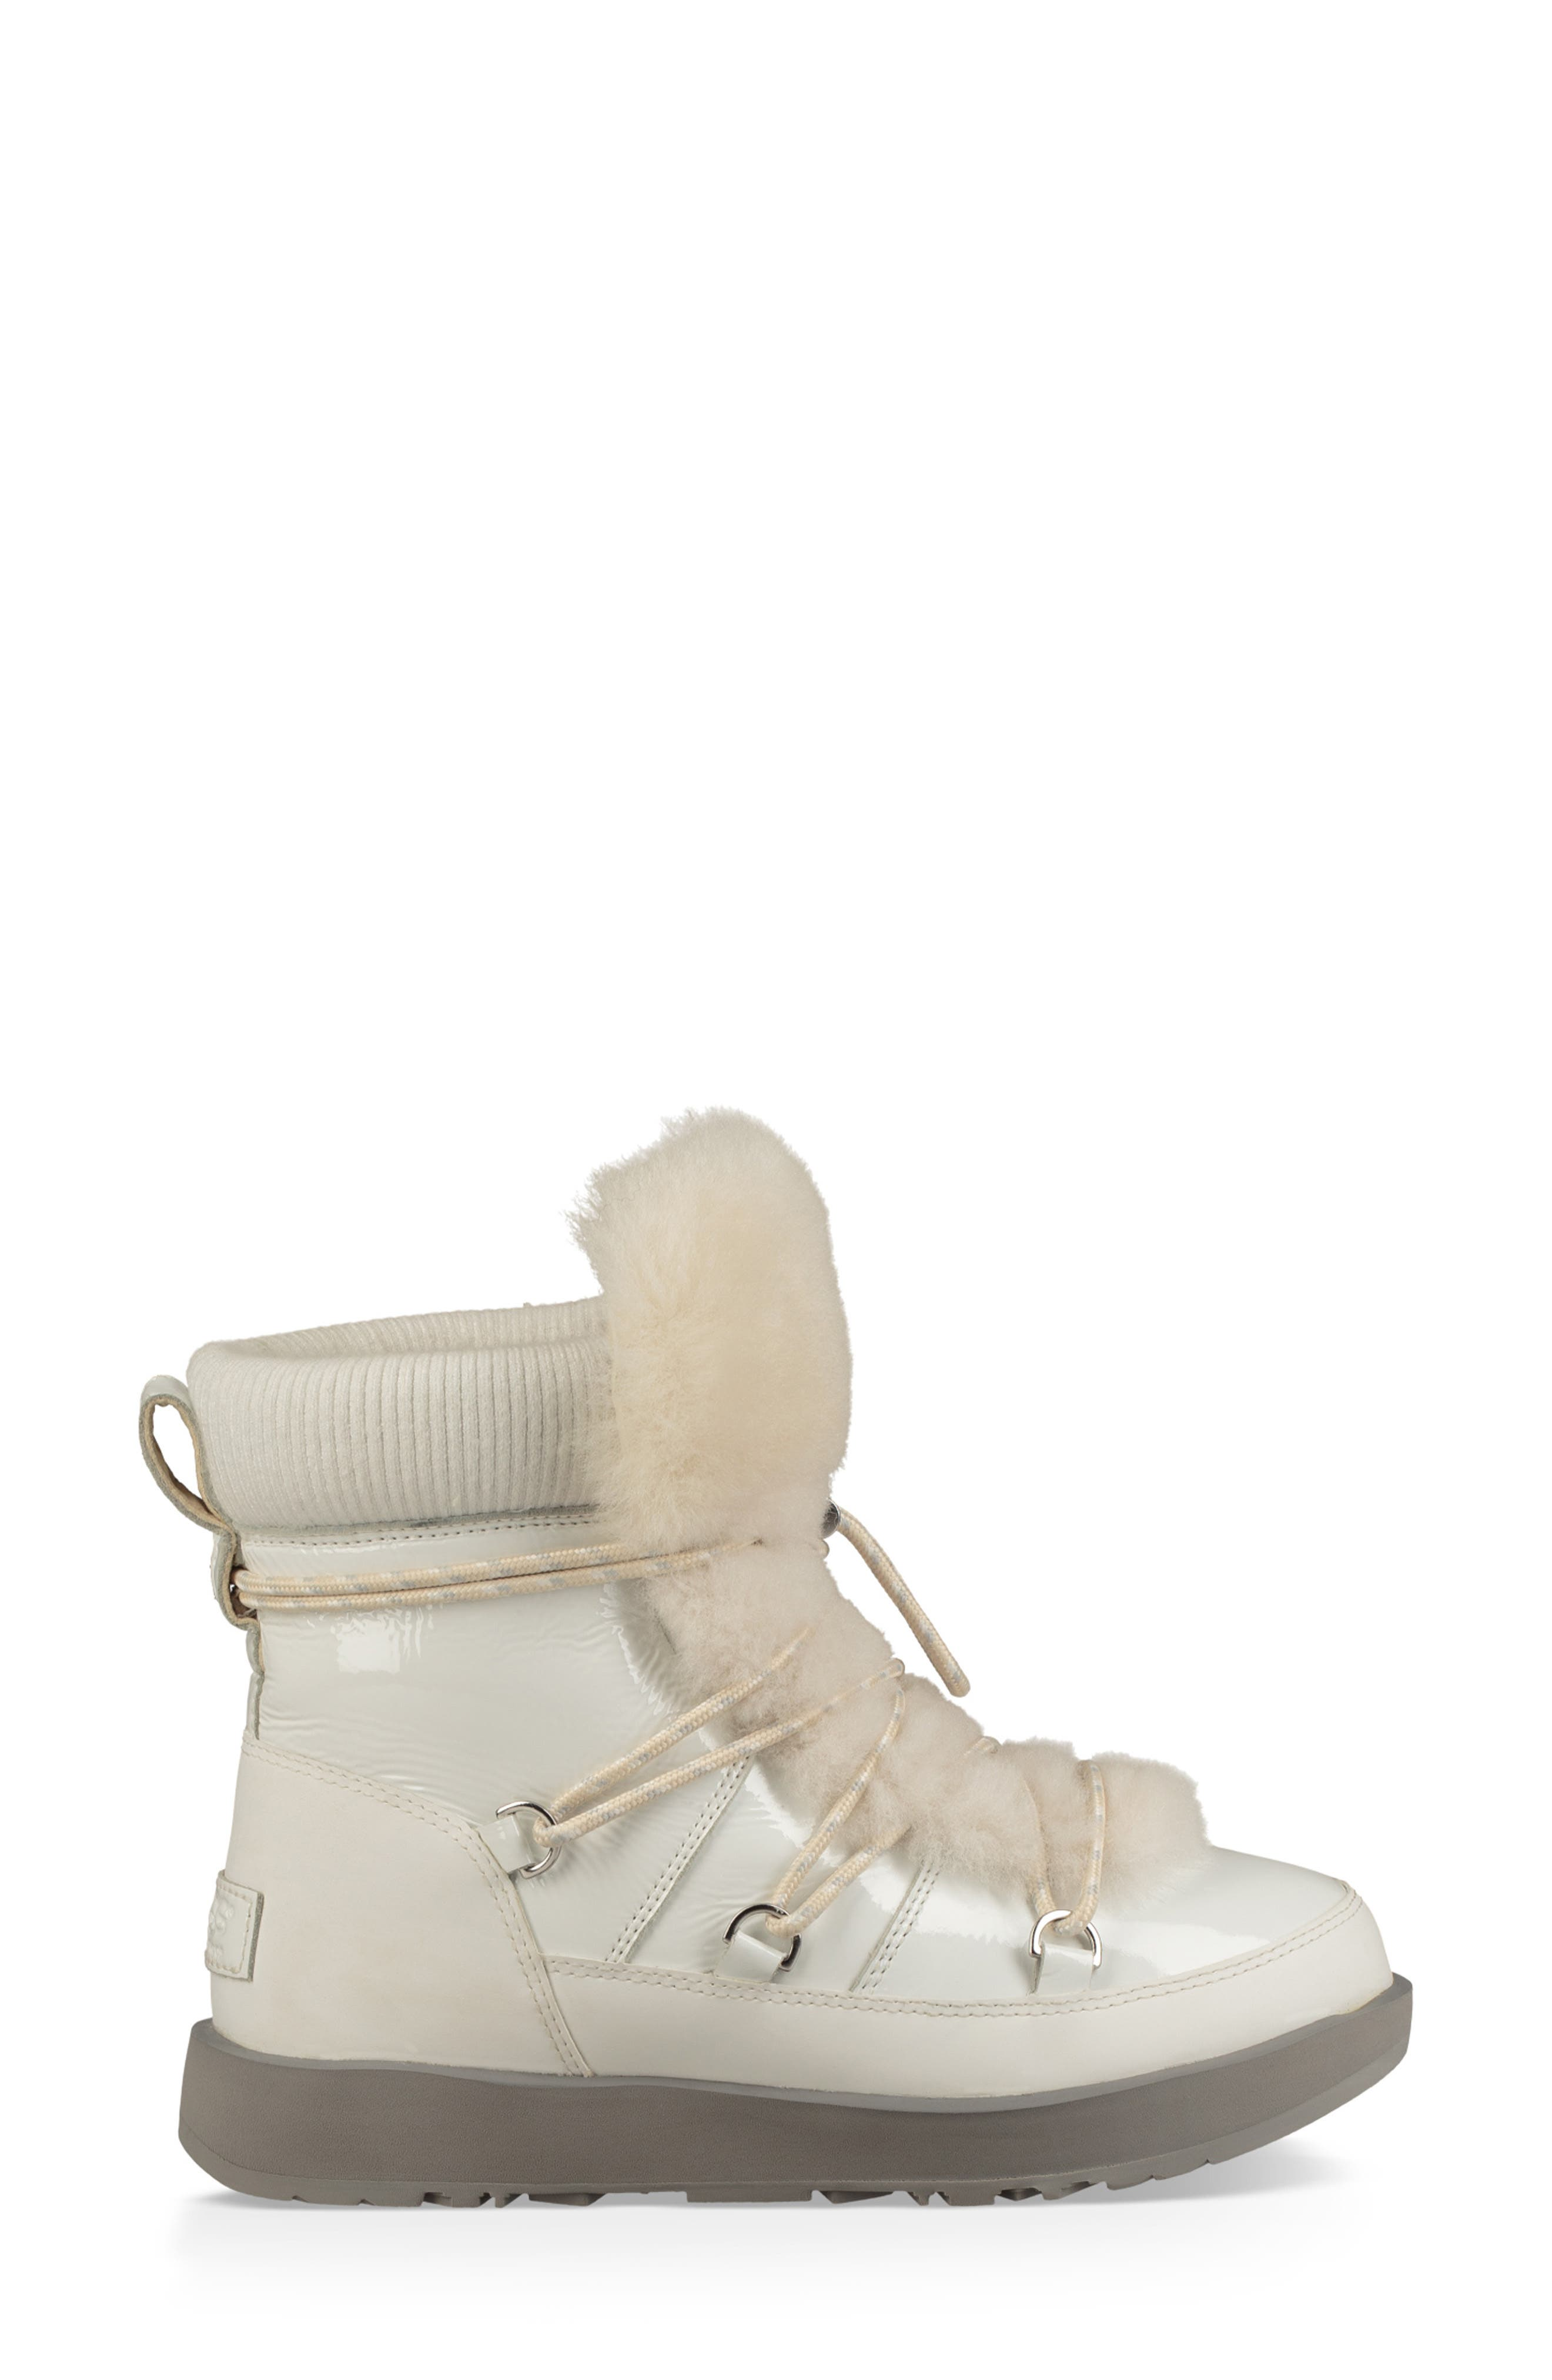 Highland Genuine Shearling Waterproof Bootie,                             Alternate thumbnail 3, color,                             WHITE LEATHER